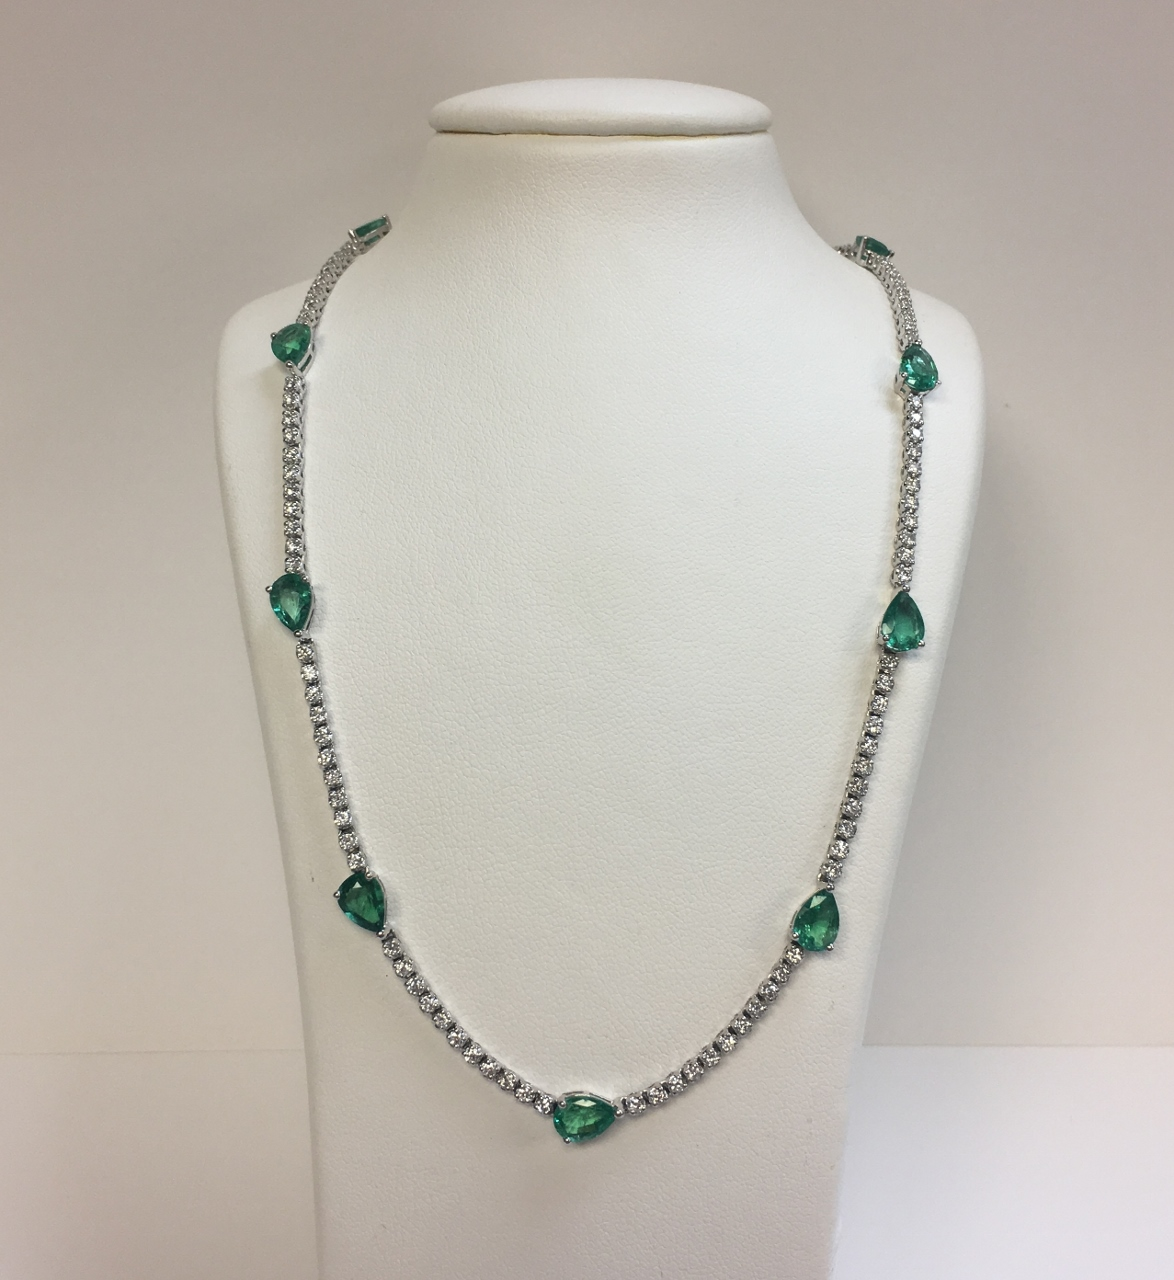 Over 6 Carats Emerald Station Necklace